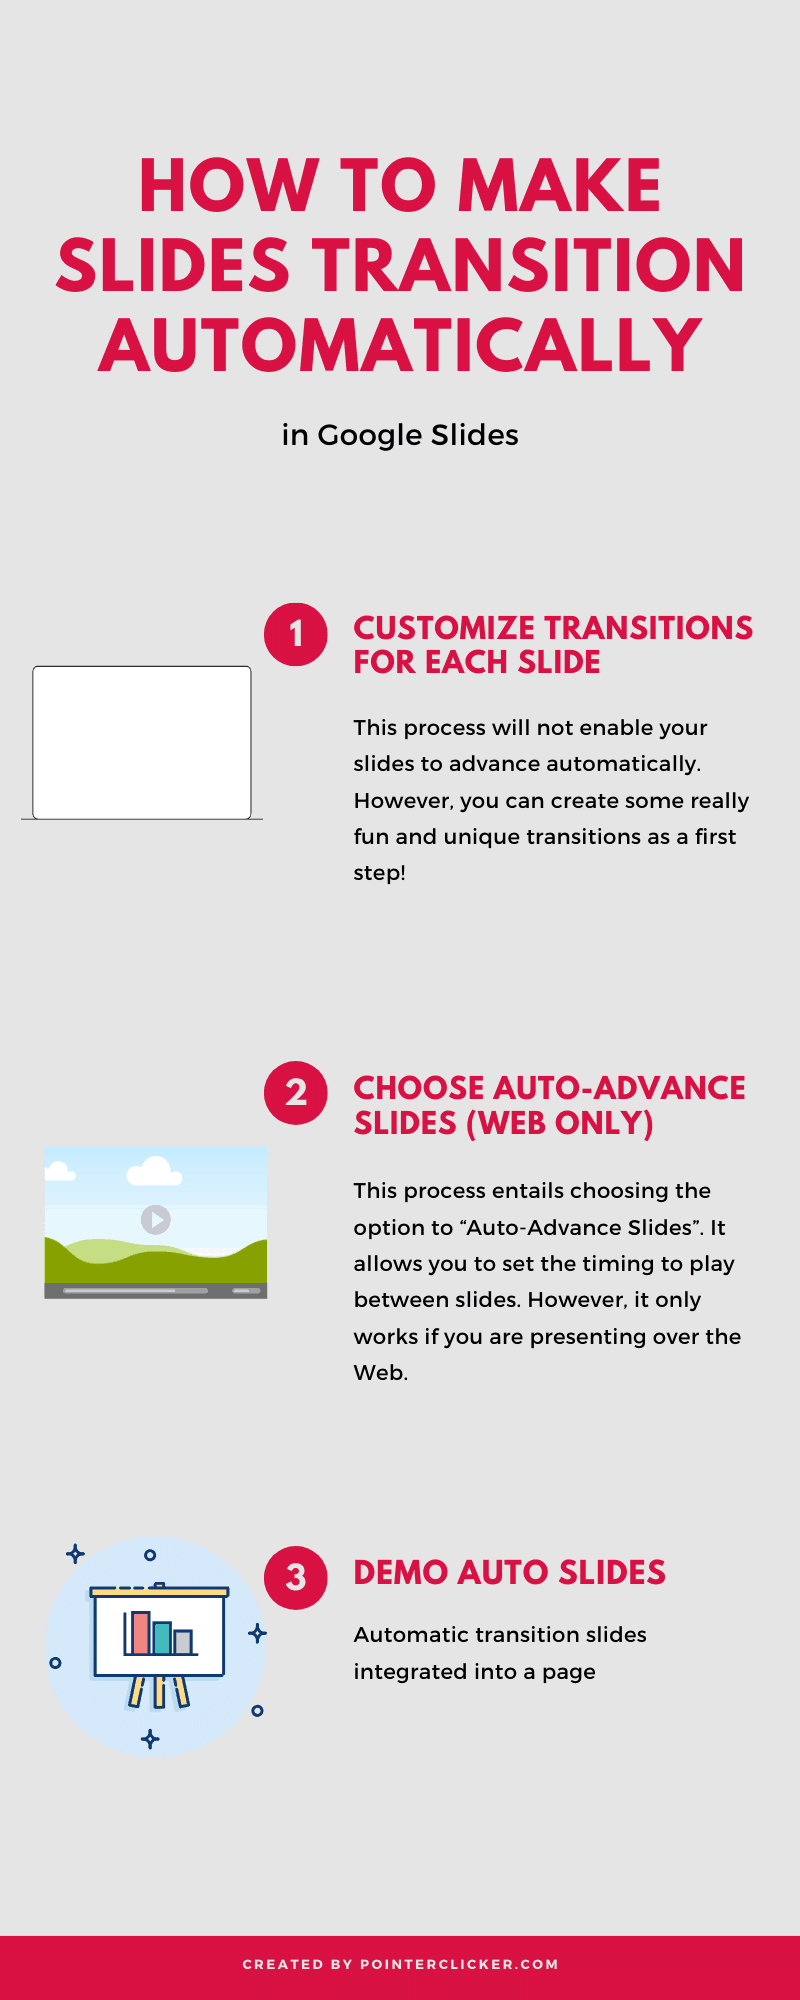 An infographic about how to make slides transition automatically